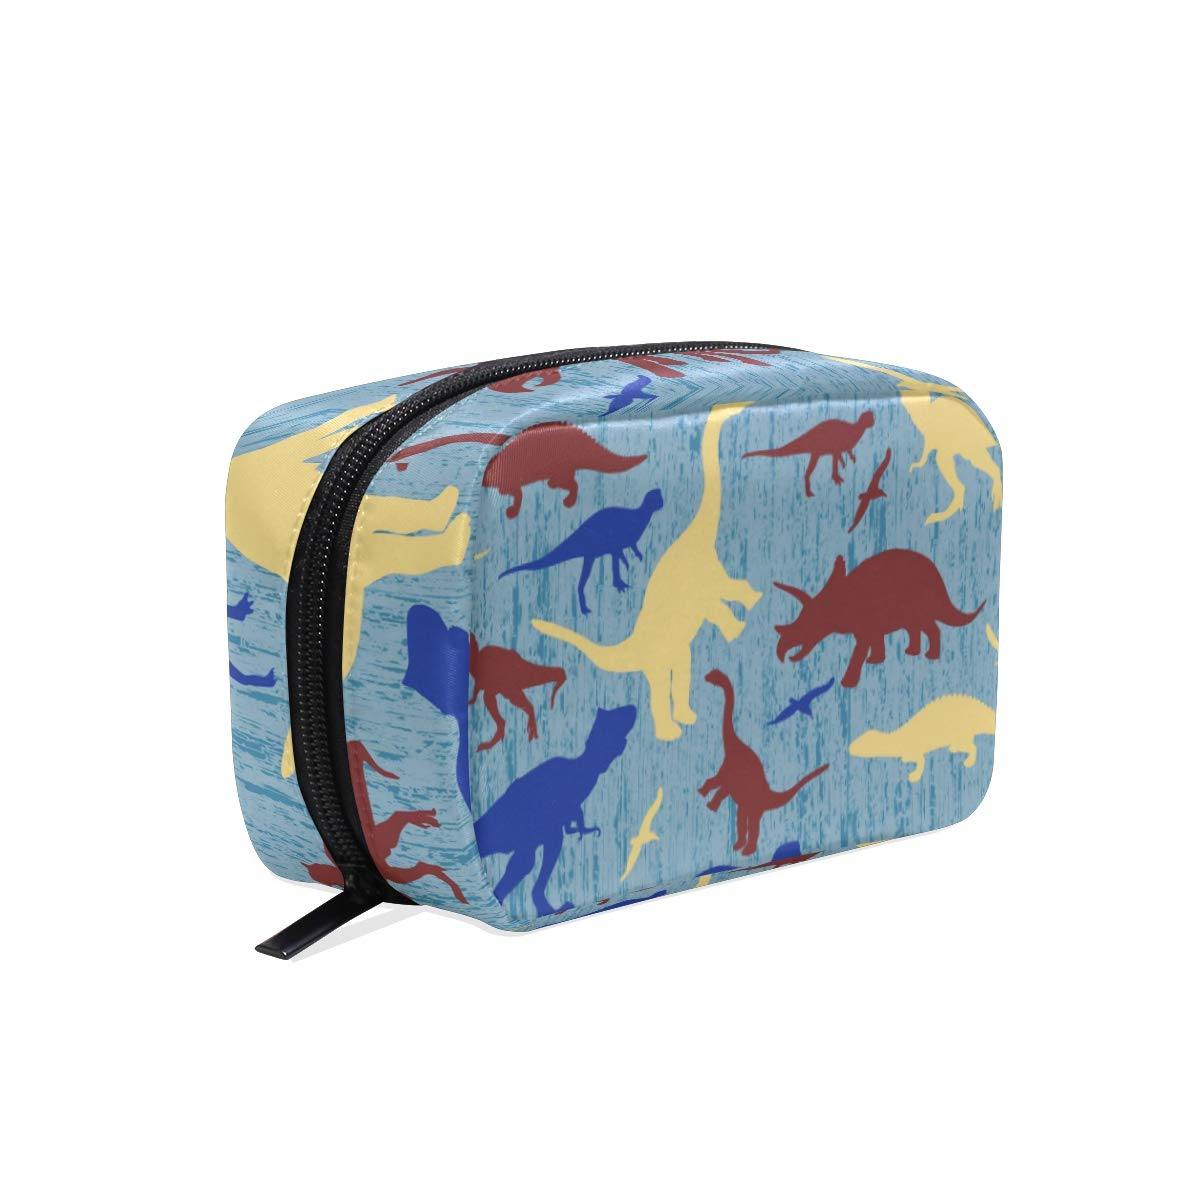 Women's Makeup Cosmetic Bag Silhouettes Of Dinosaur Makeup Pouch for Travel Cosmetic Pouch Purse(904h)